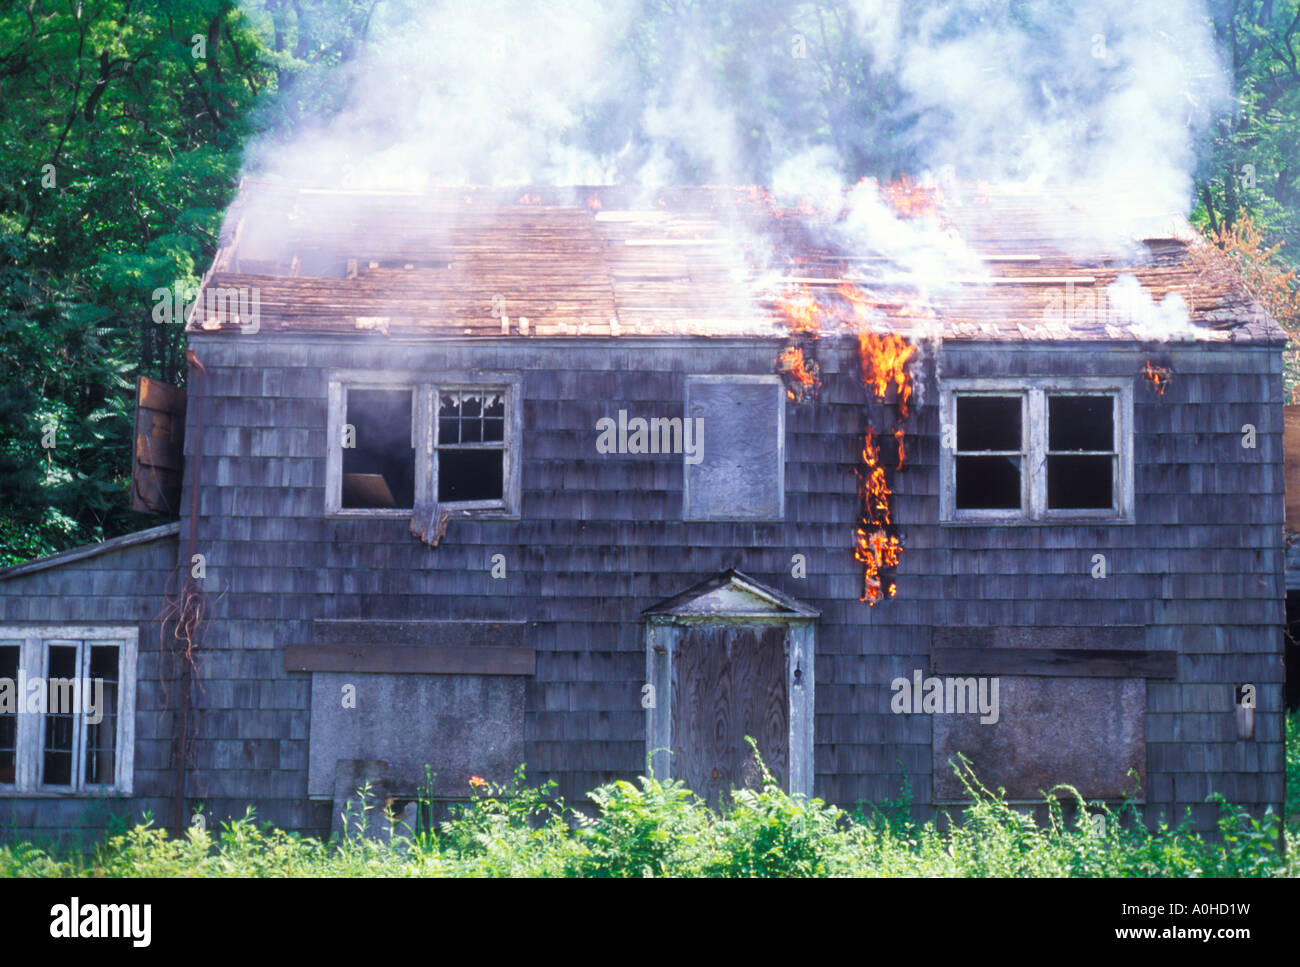 New York State brennendes Holz Rahmen Haus in Flammen, USA Stockfoto ...